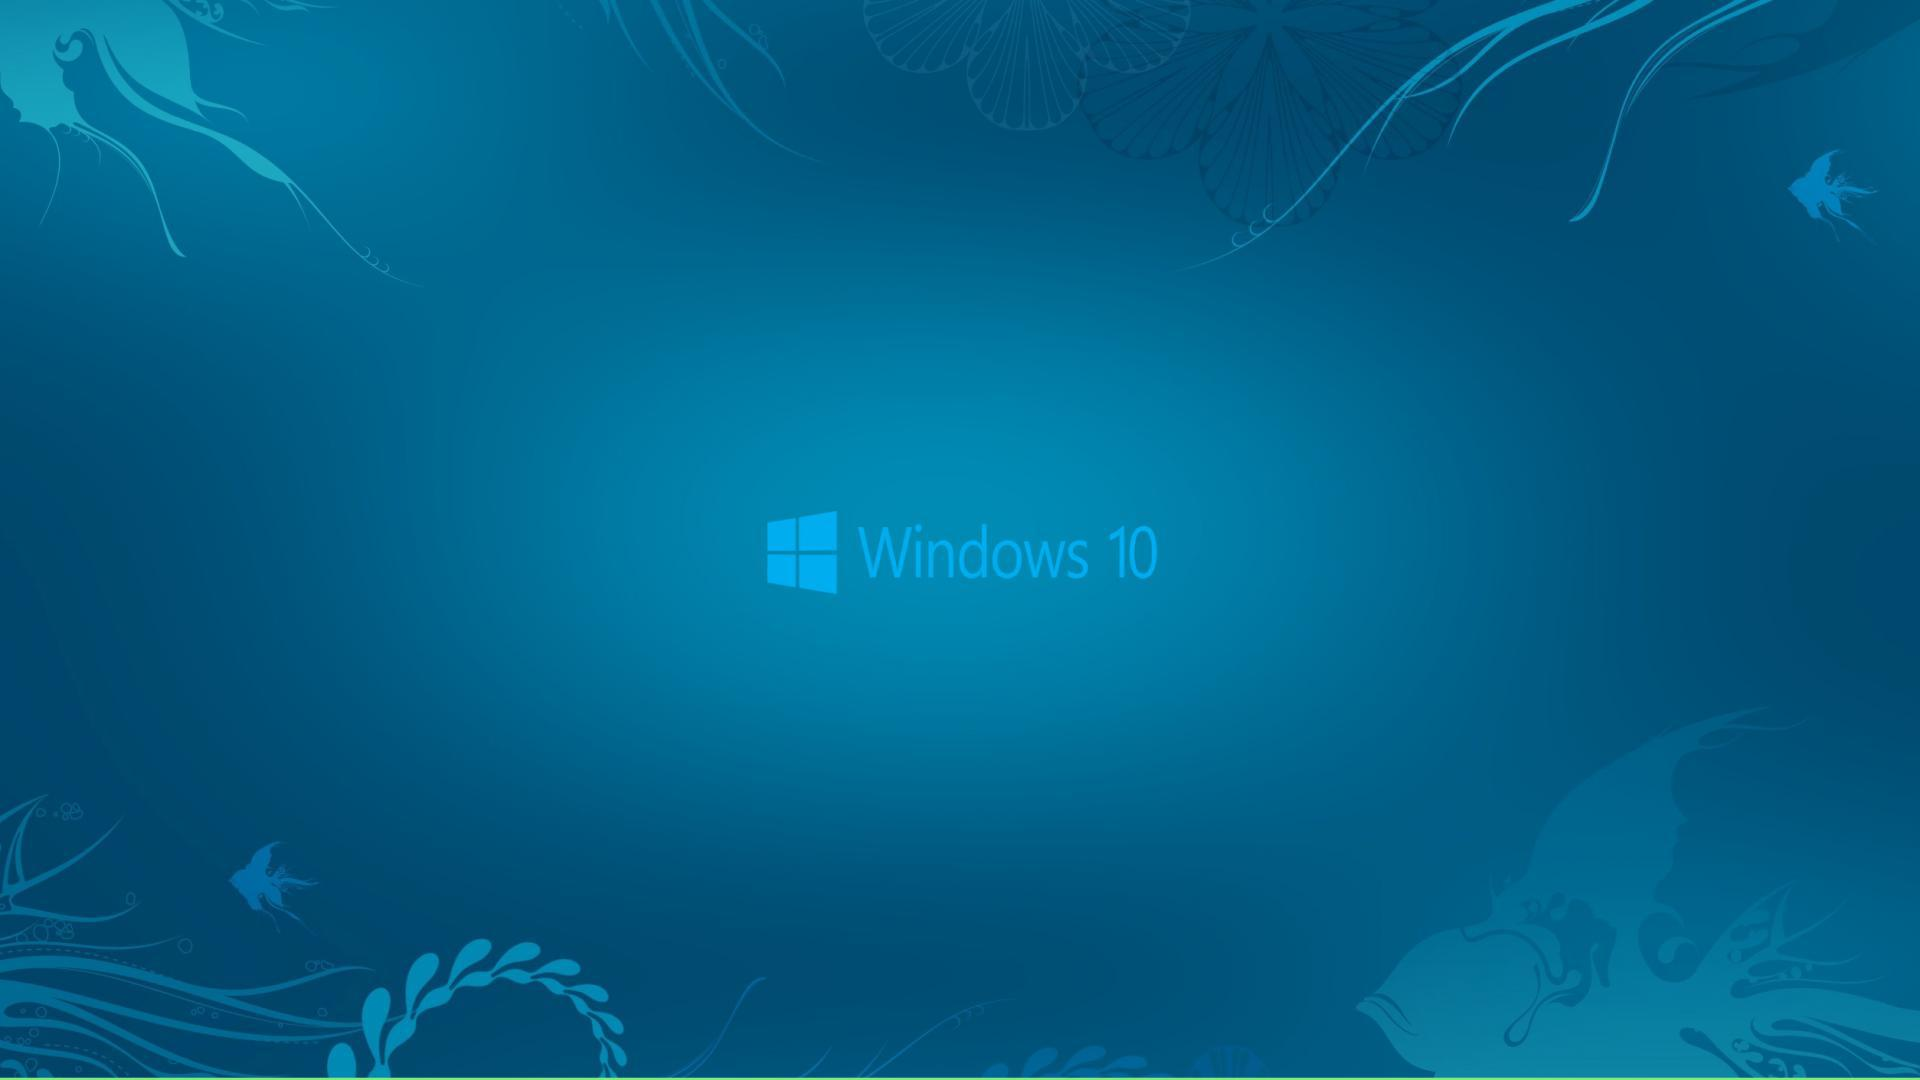 Operating system Windows 10 wallpapers and images   wallpapers 1920x1080